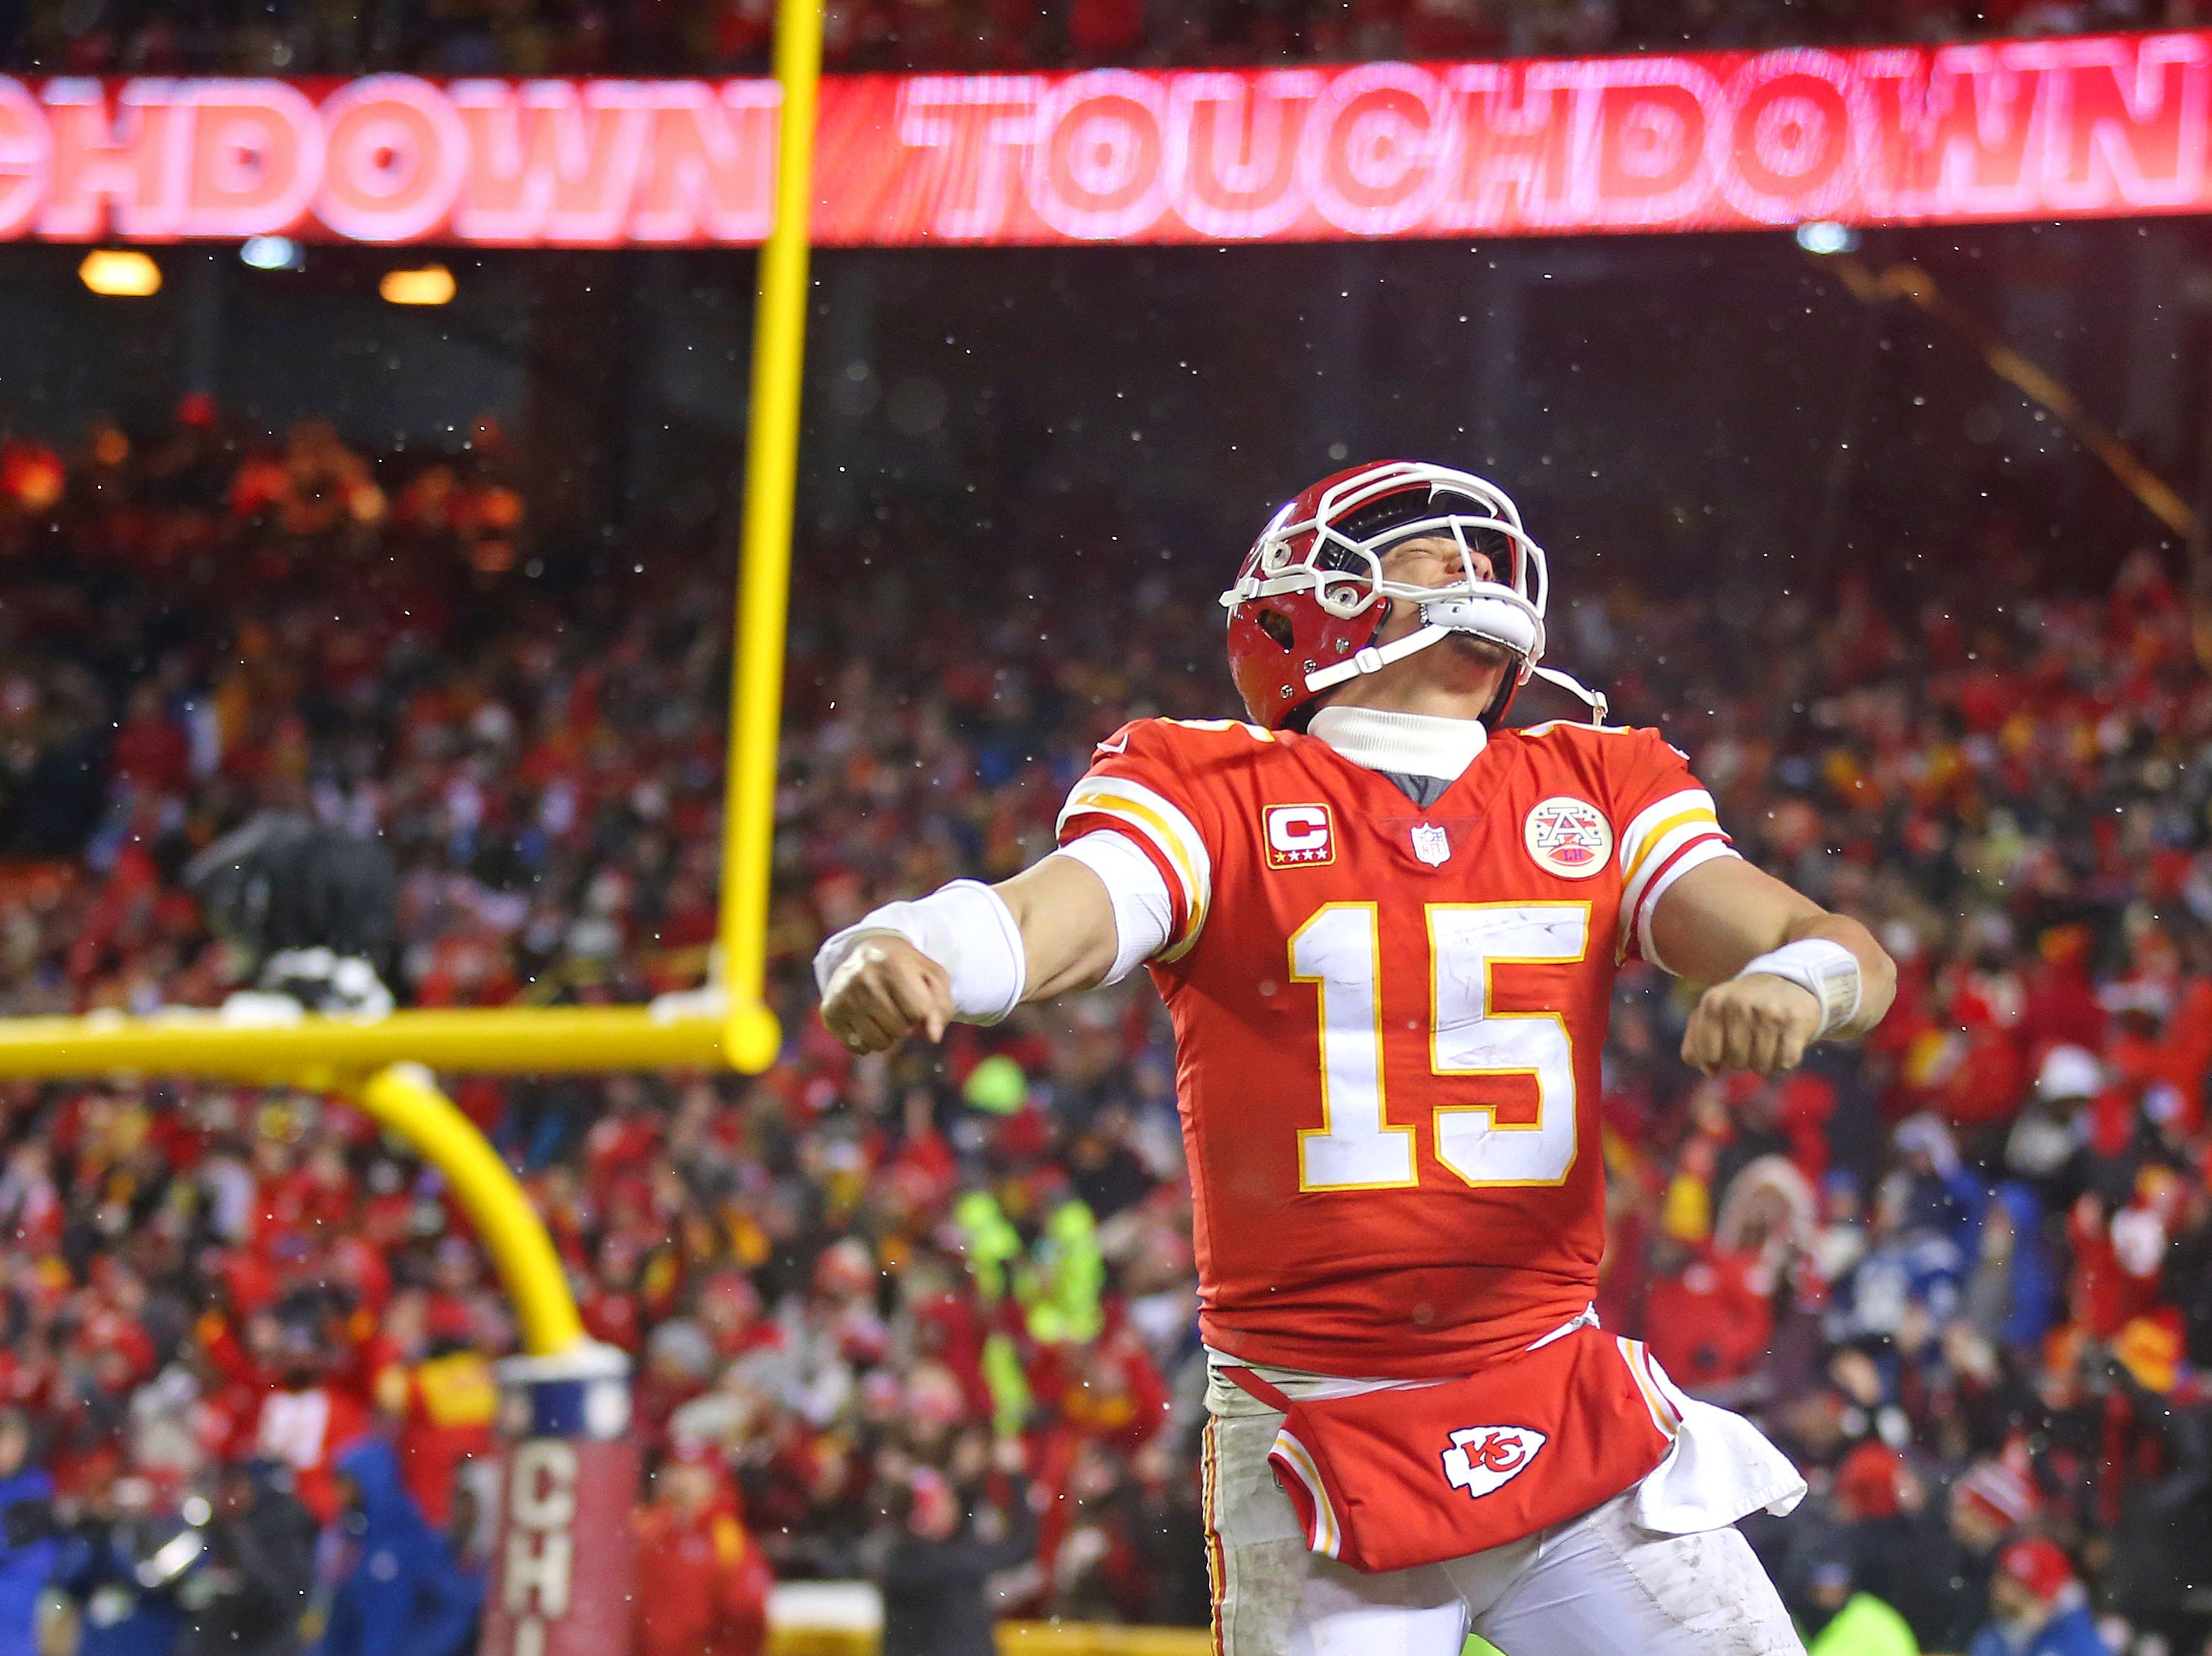 Kansas City Chiefs quarterback Patrick Mahomes (15) celebrates after a touchdown during the fourth quarter against the Indianapolis Colts at Arrowhead Stadium.